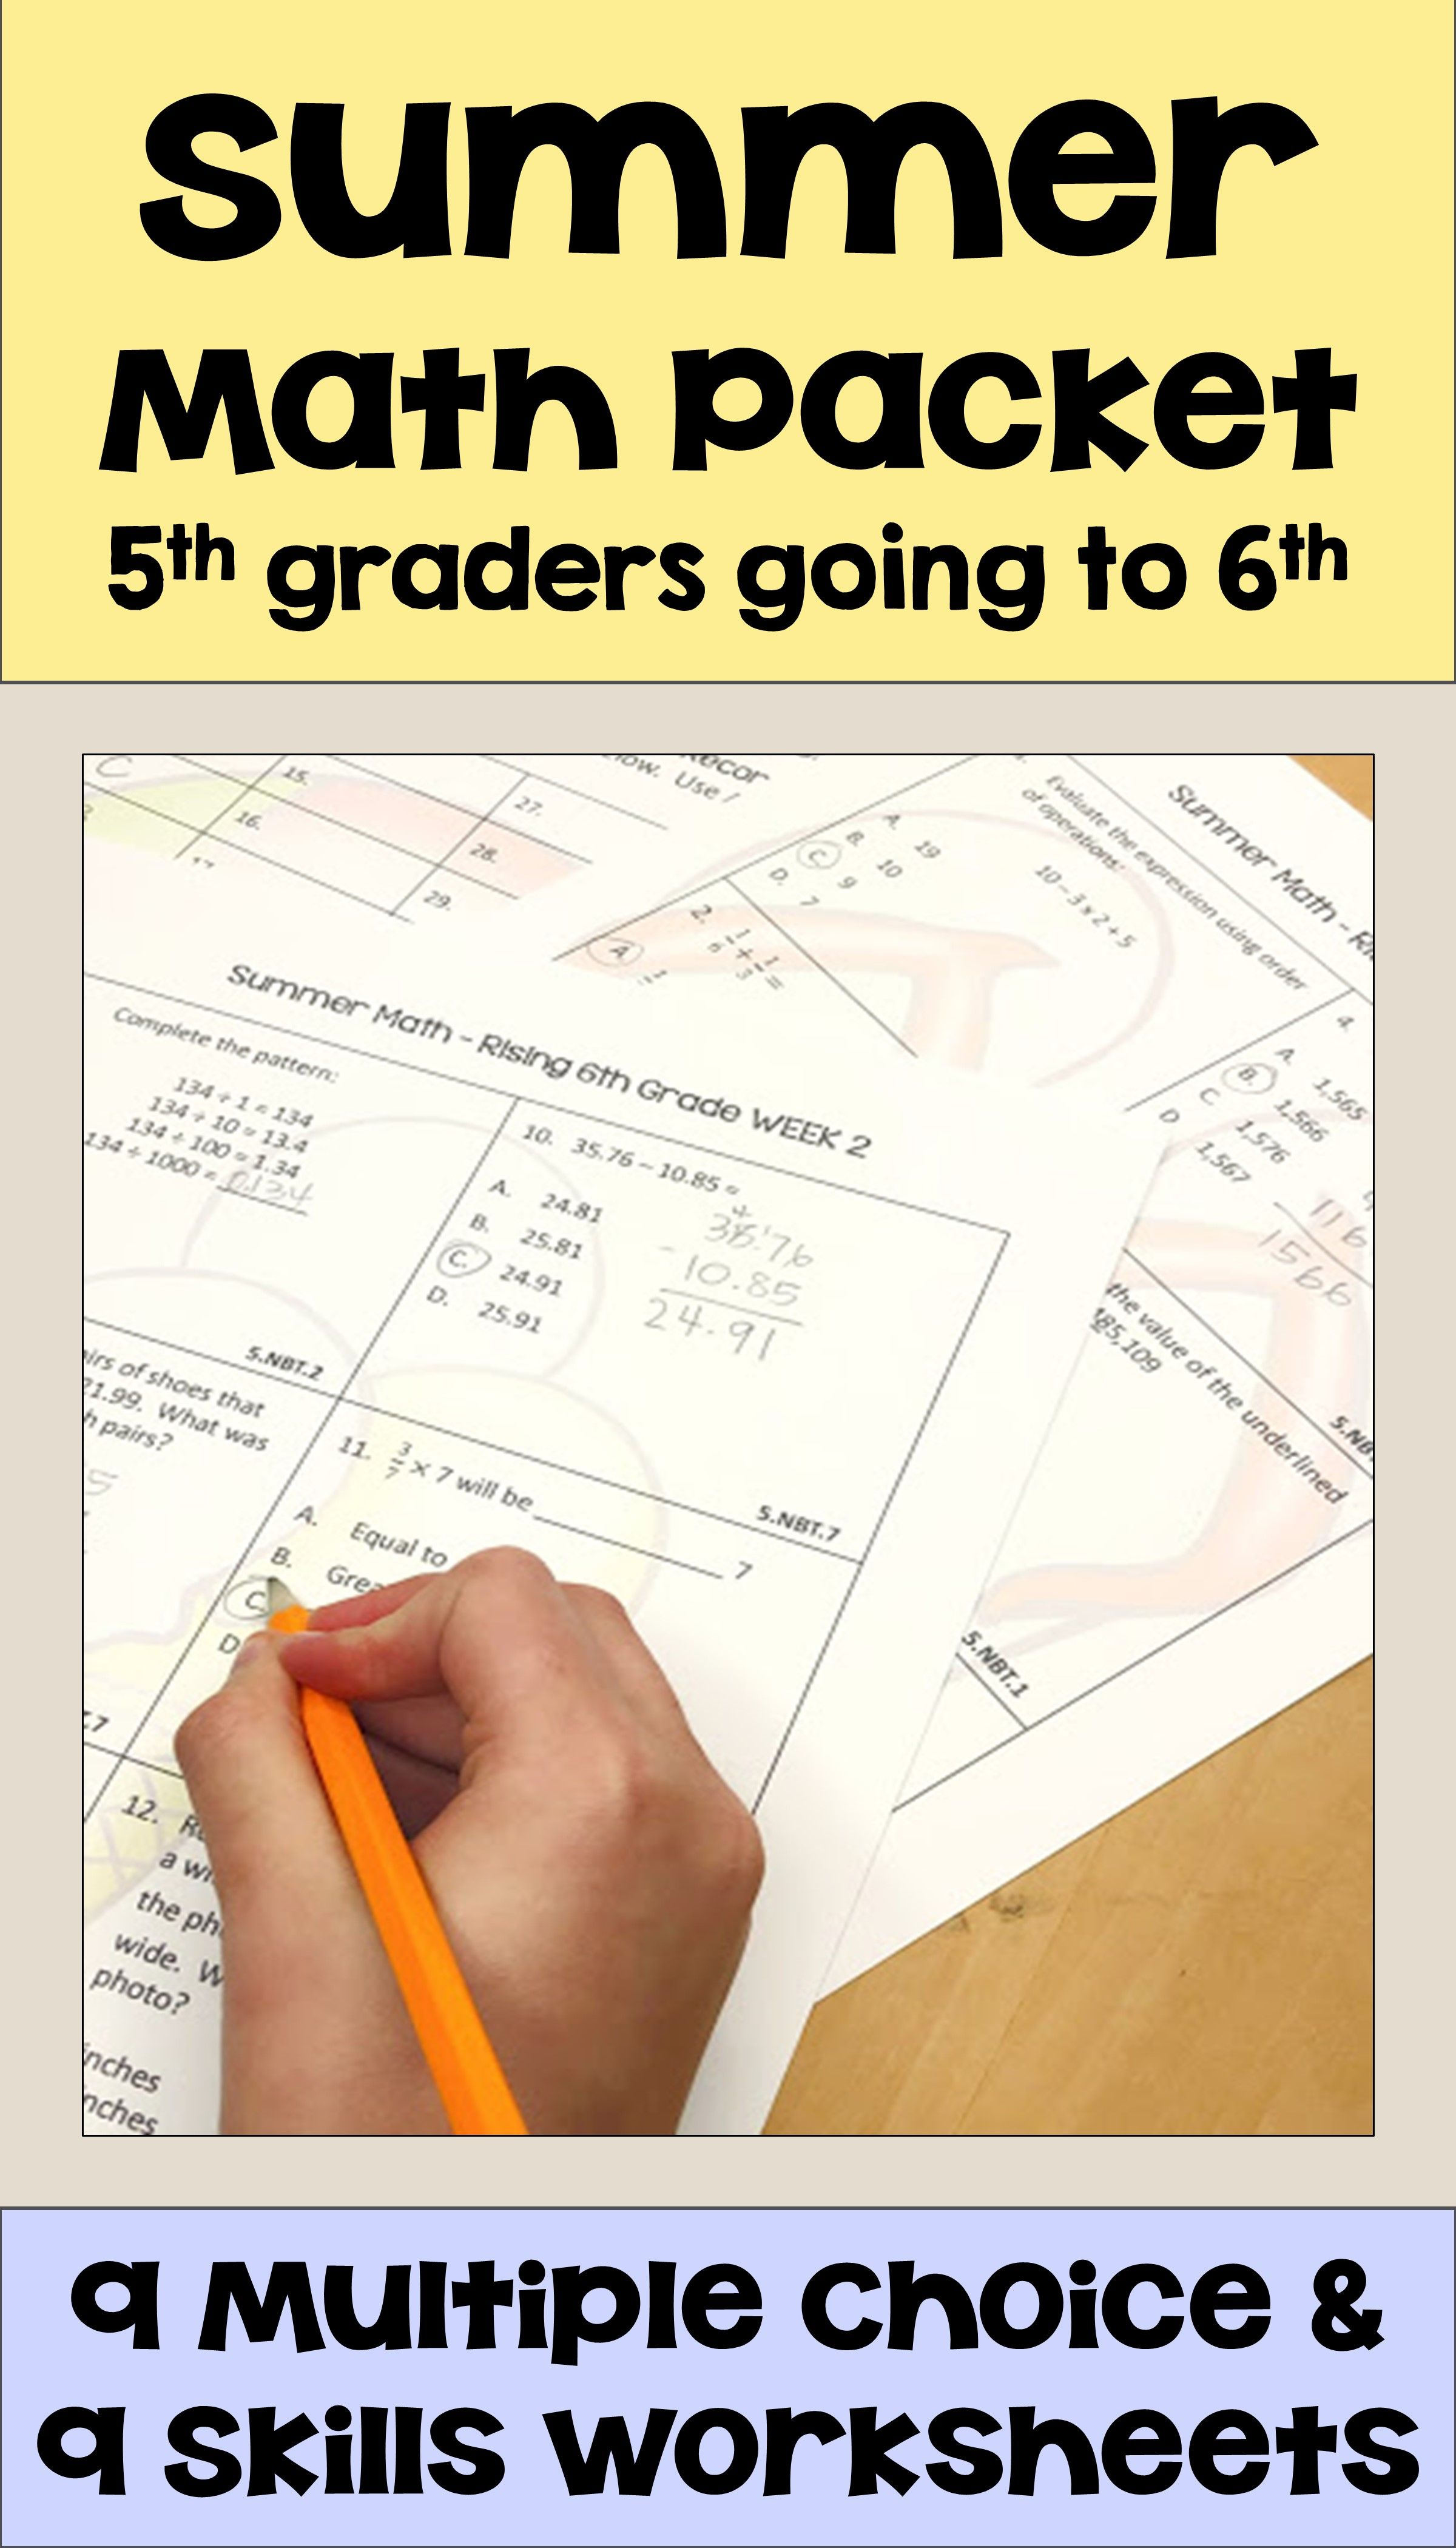 Summer Math Packet for Rising 6th Graders - Review of 5th Grade Math   Math  packets [ 4200 x 2400 Pixel ]